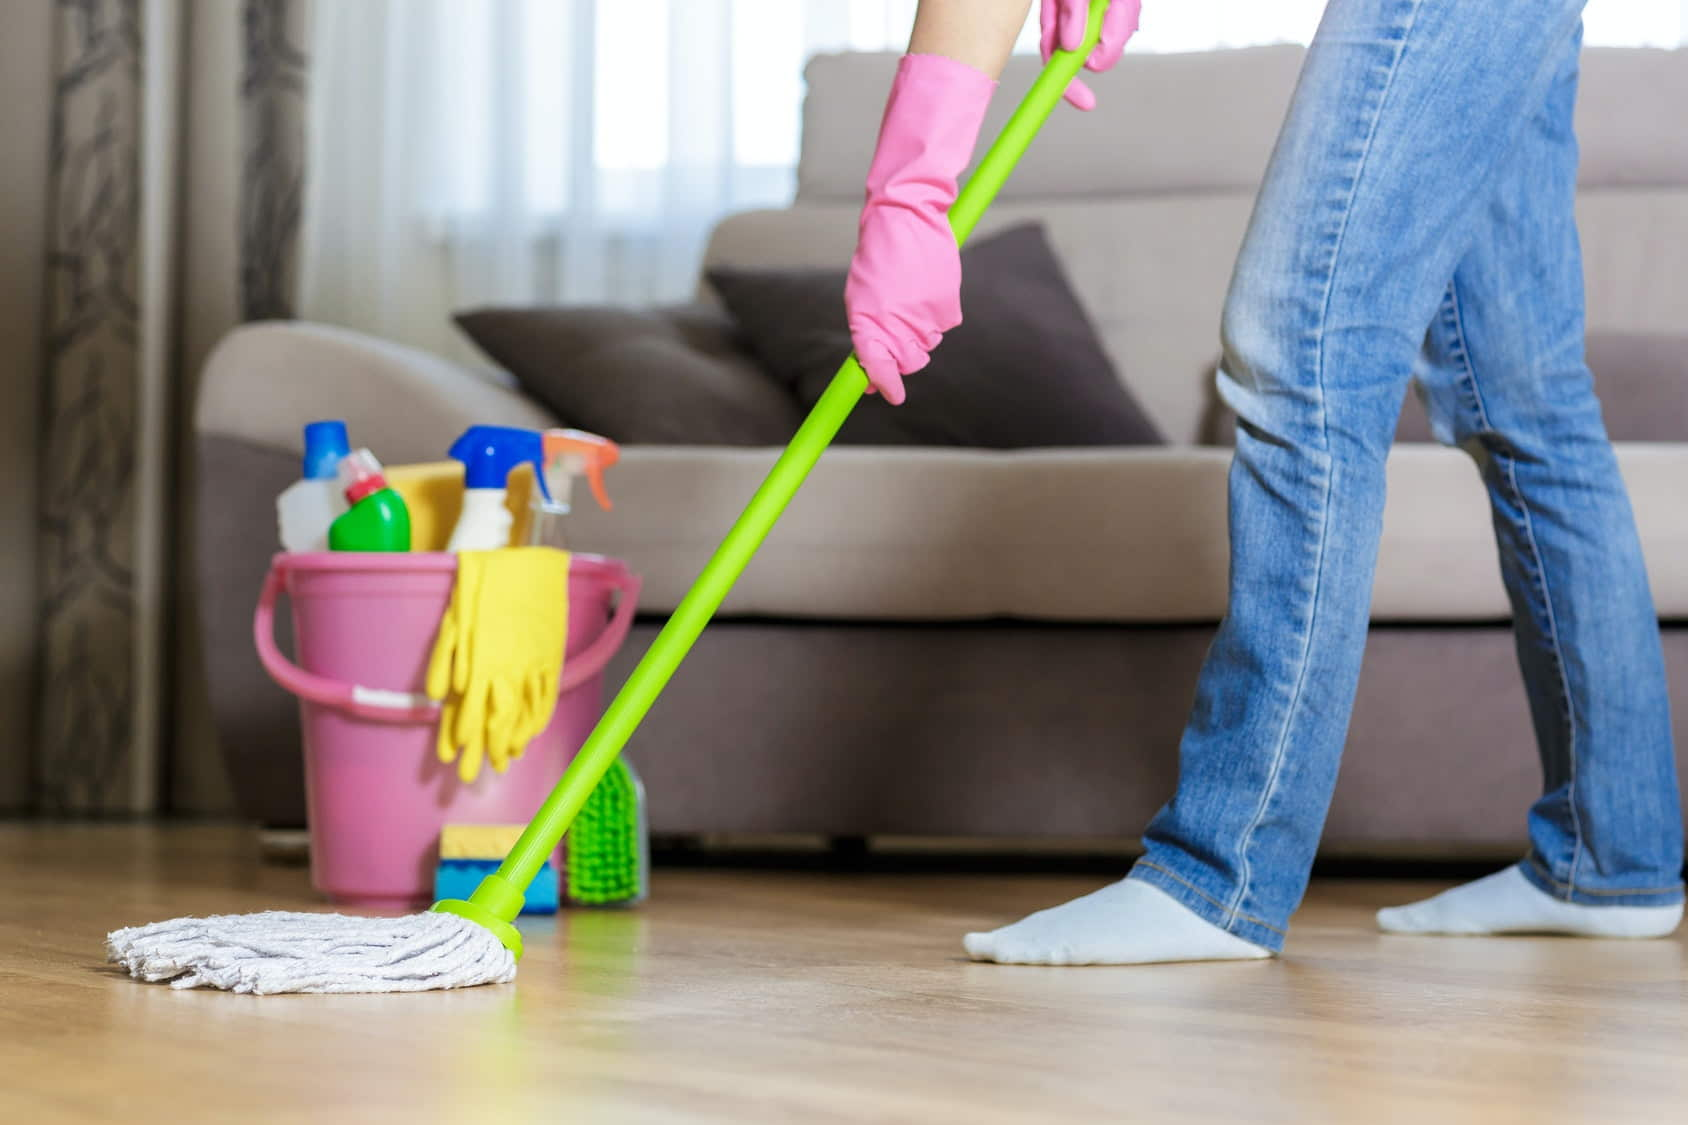 Castile Soap is Another Good Option to Clean Your Laminate Floor